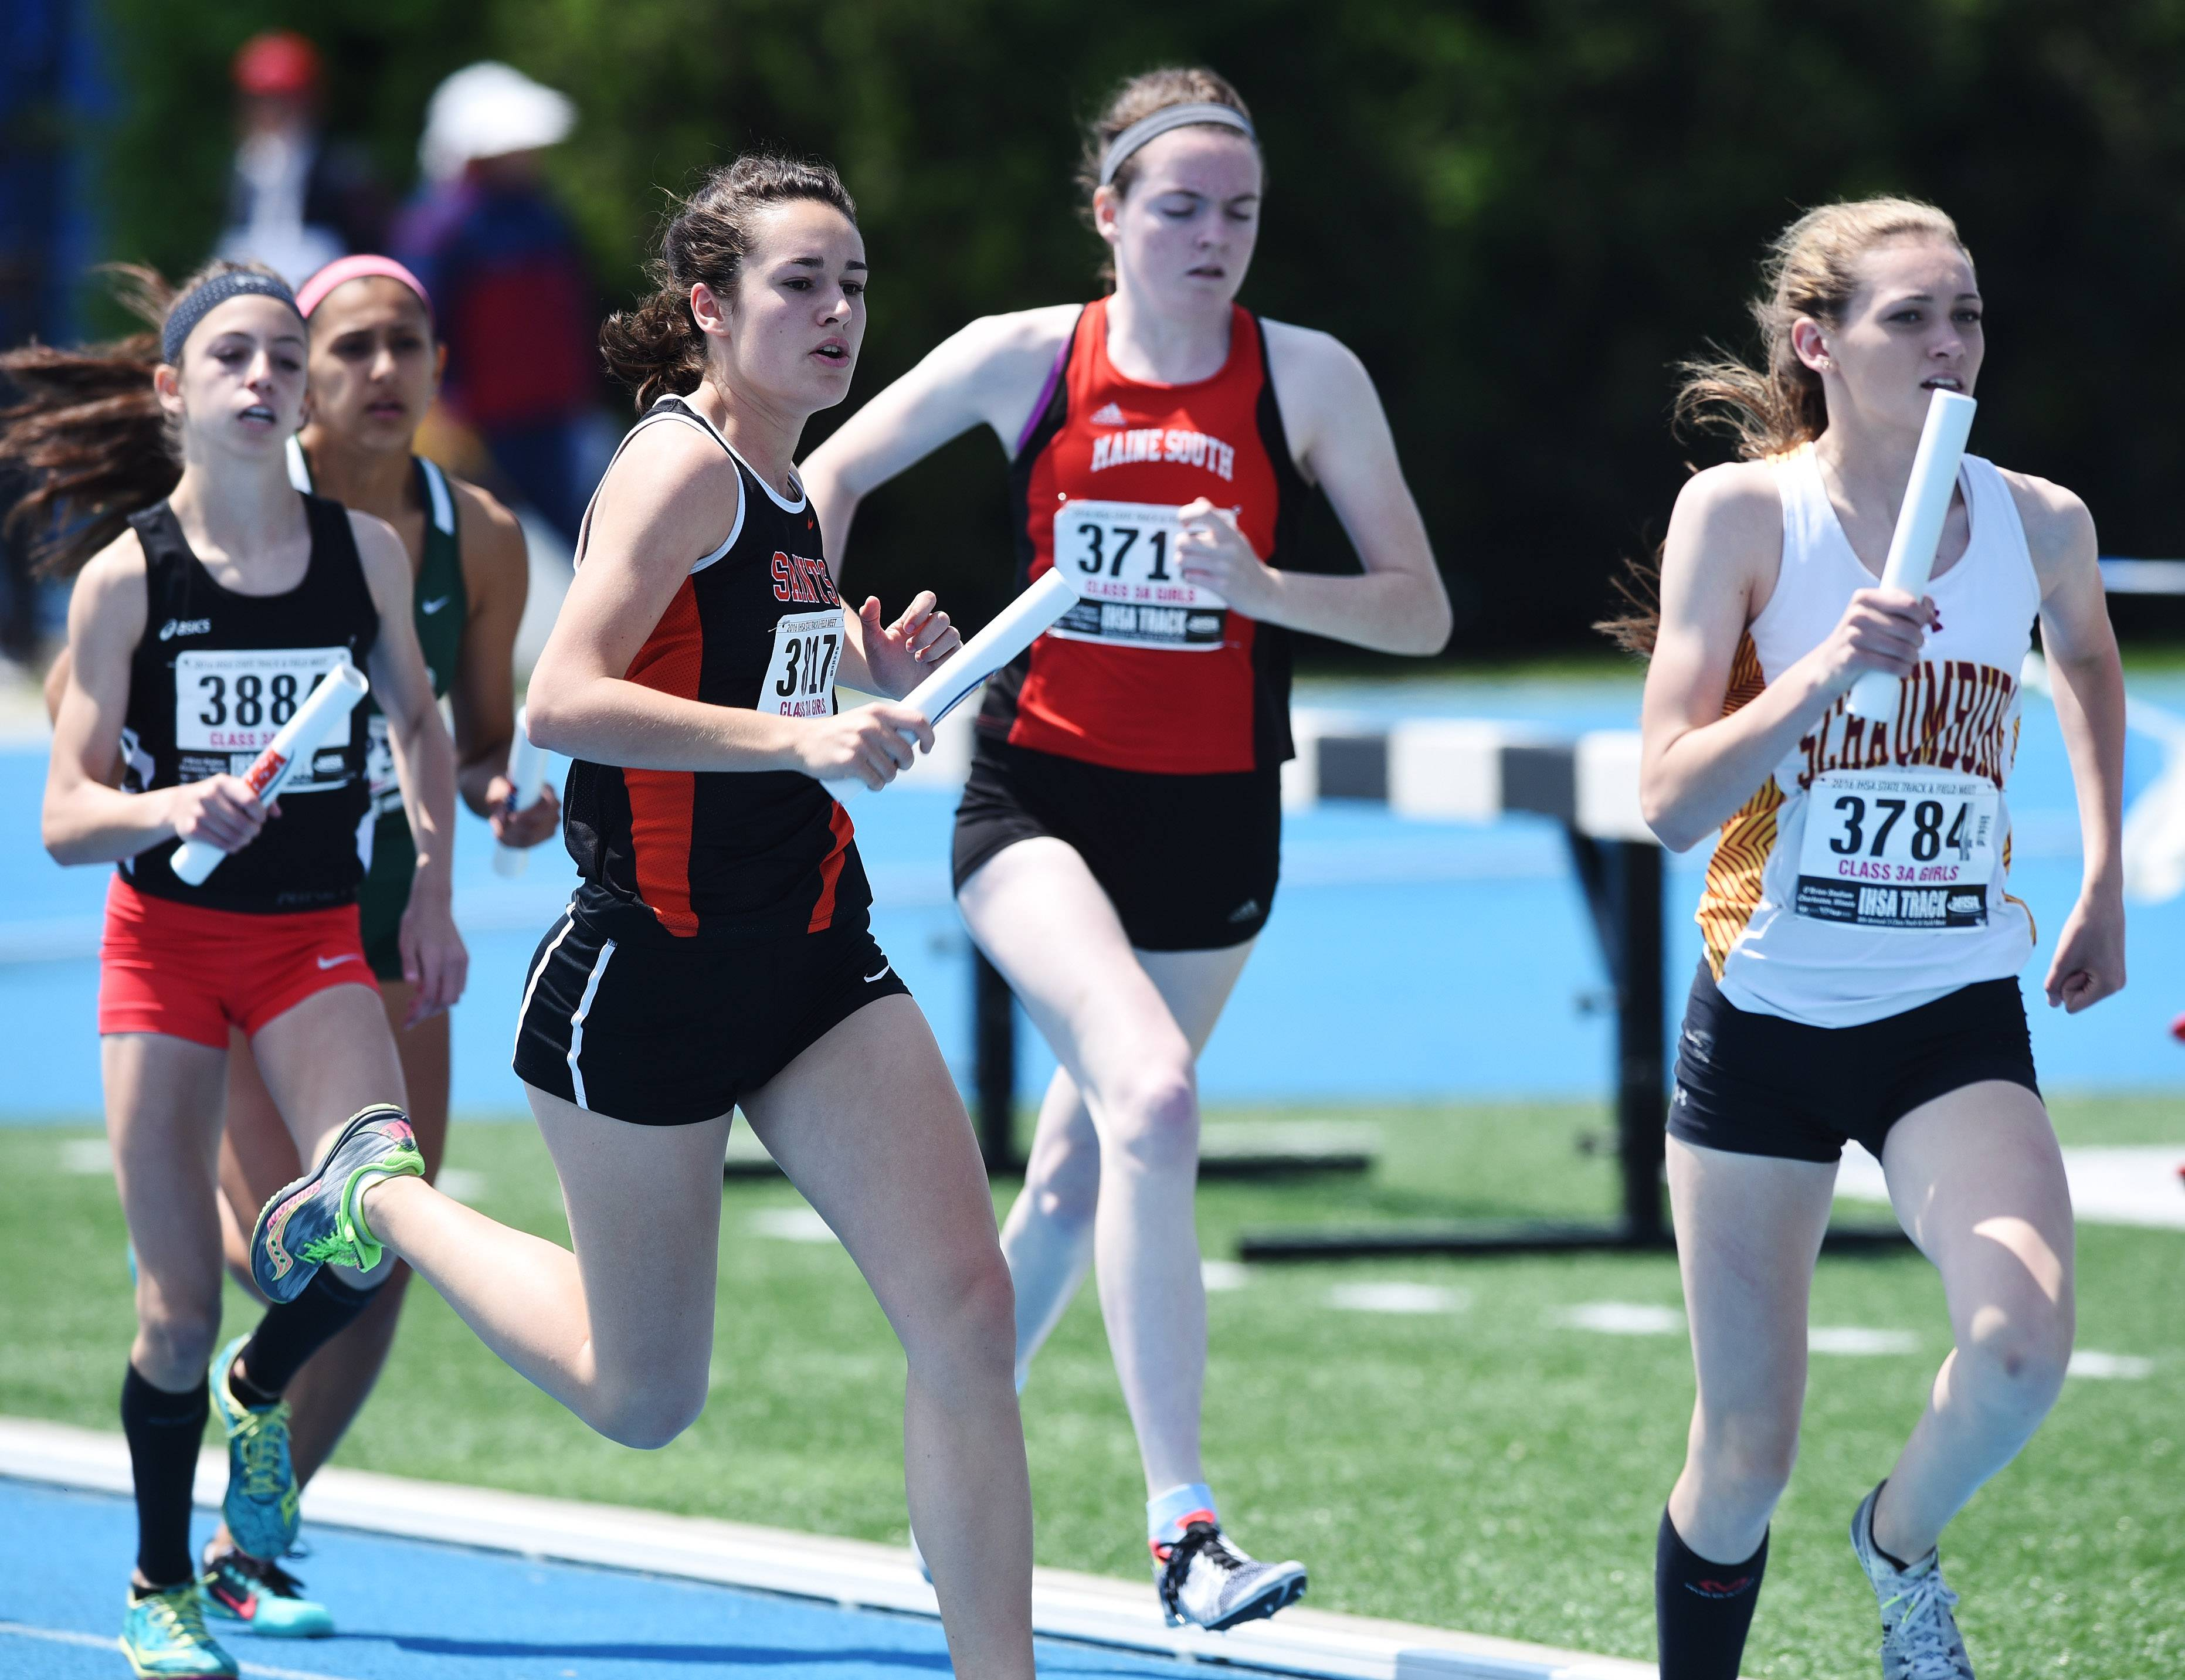 Images: Saturday at the State Final Meet in Girls Track & Field